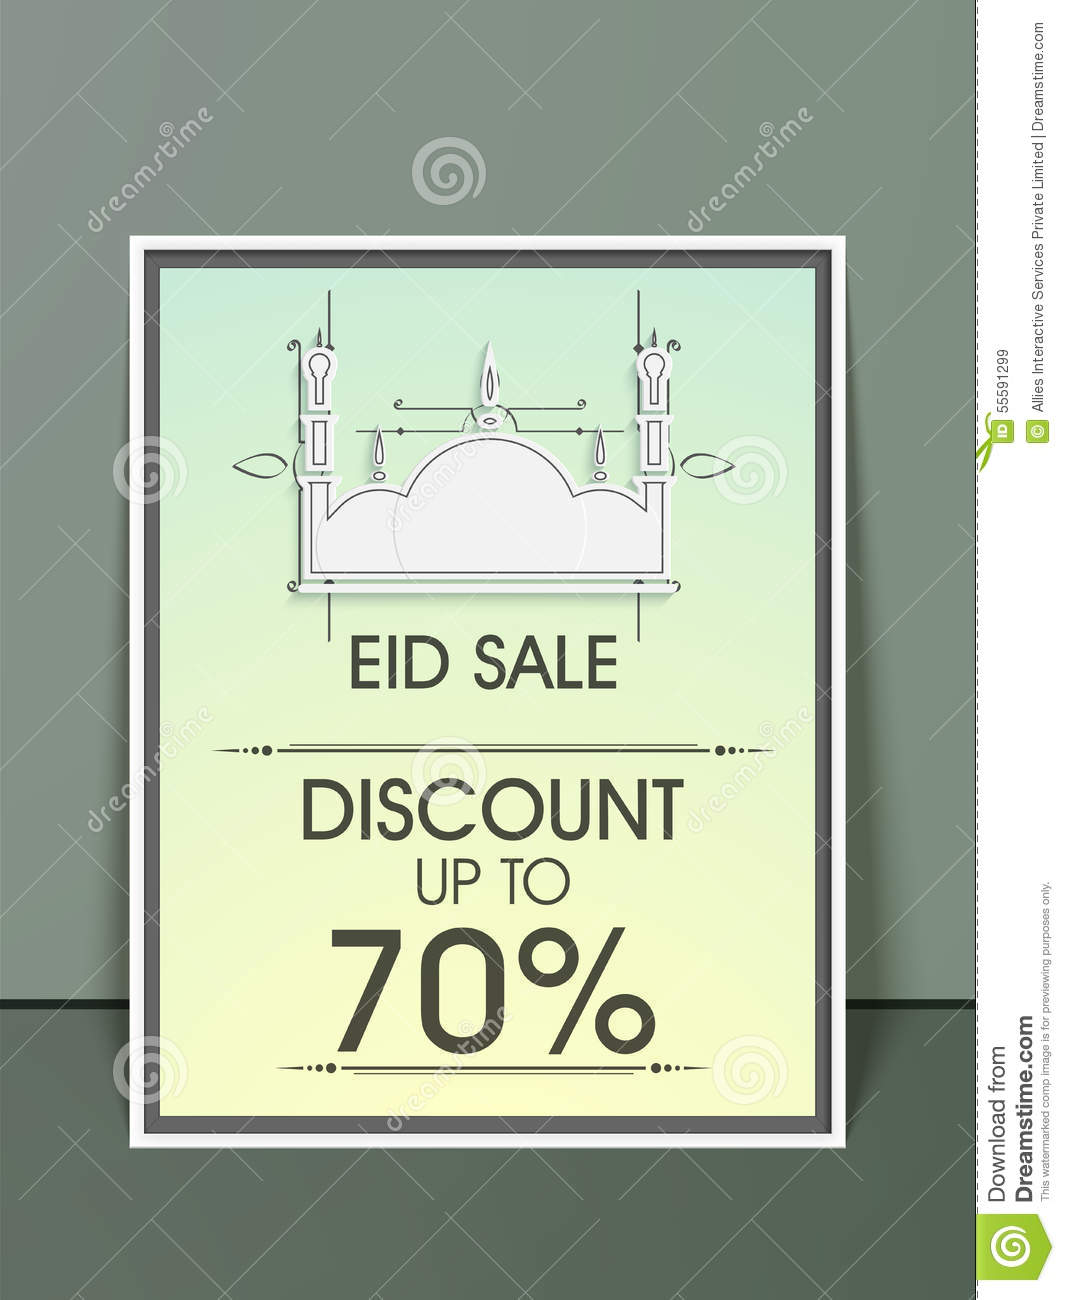 Stylish Sale Flyer, Banner Or Template. Royalty-Free Stock